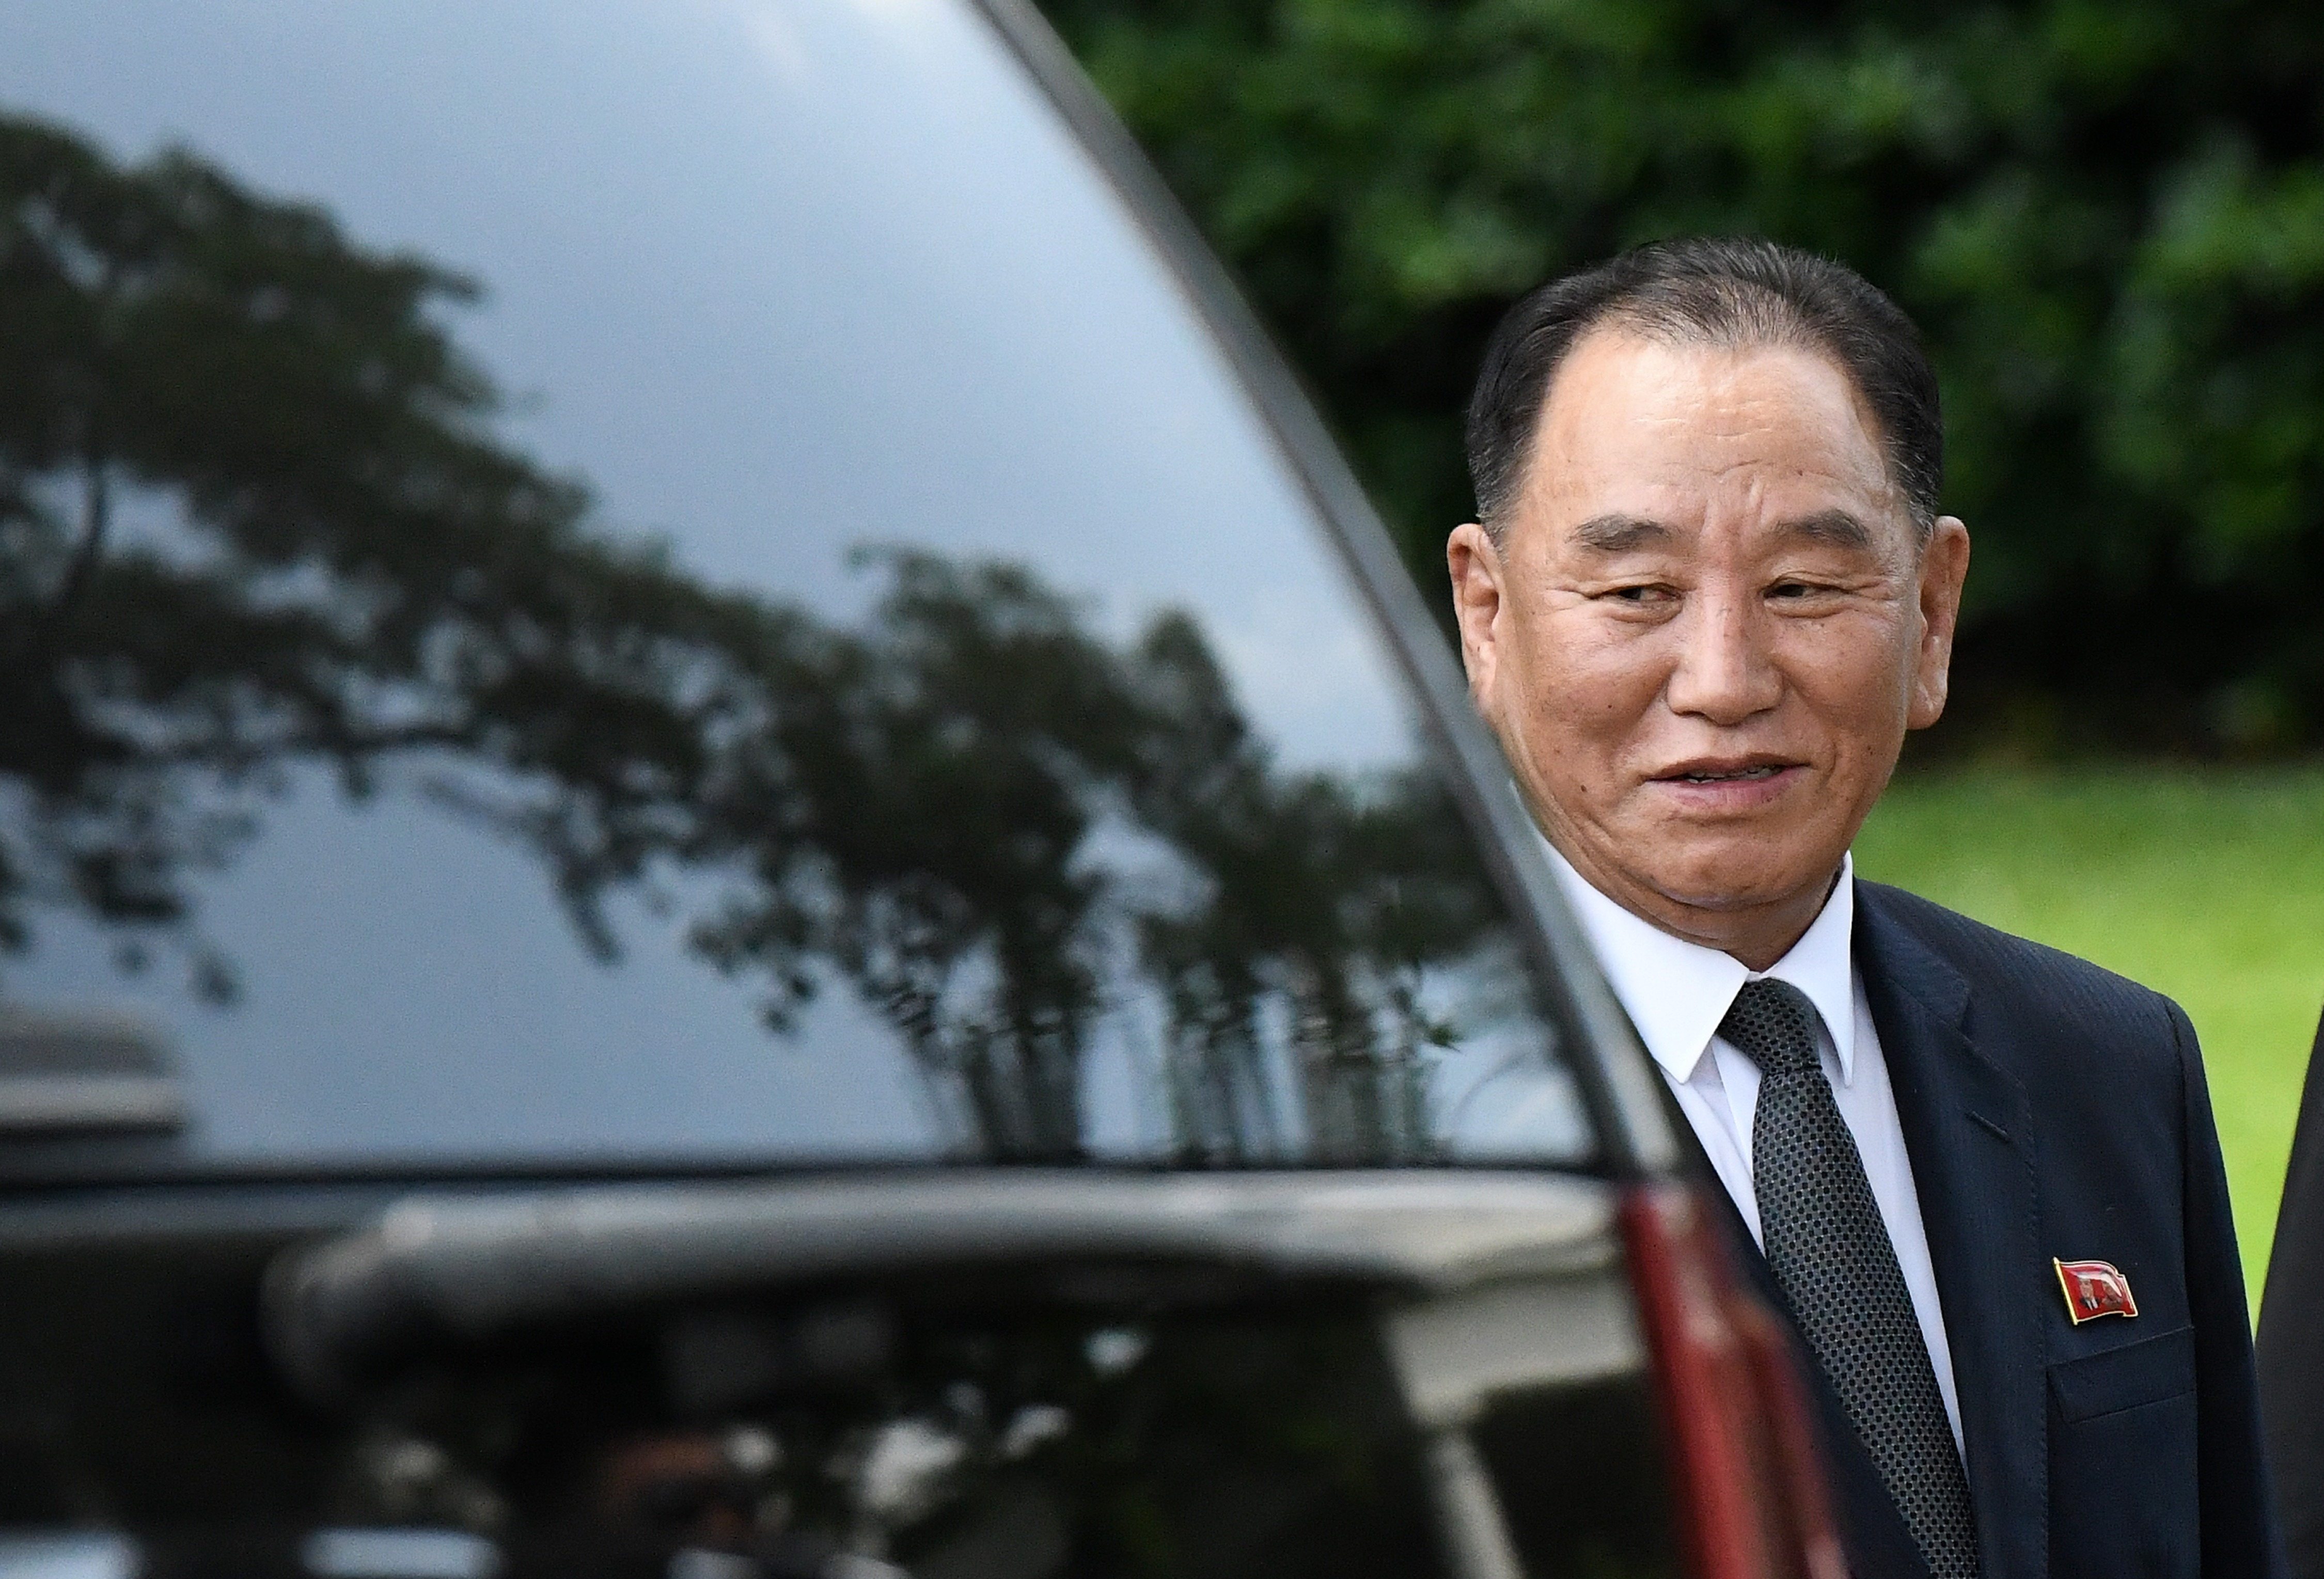 Kim Yong Chol, former North Korean military intelligence chief, departs the White House on June 1, 2018 in Washington, DC.